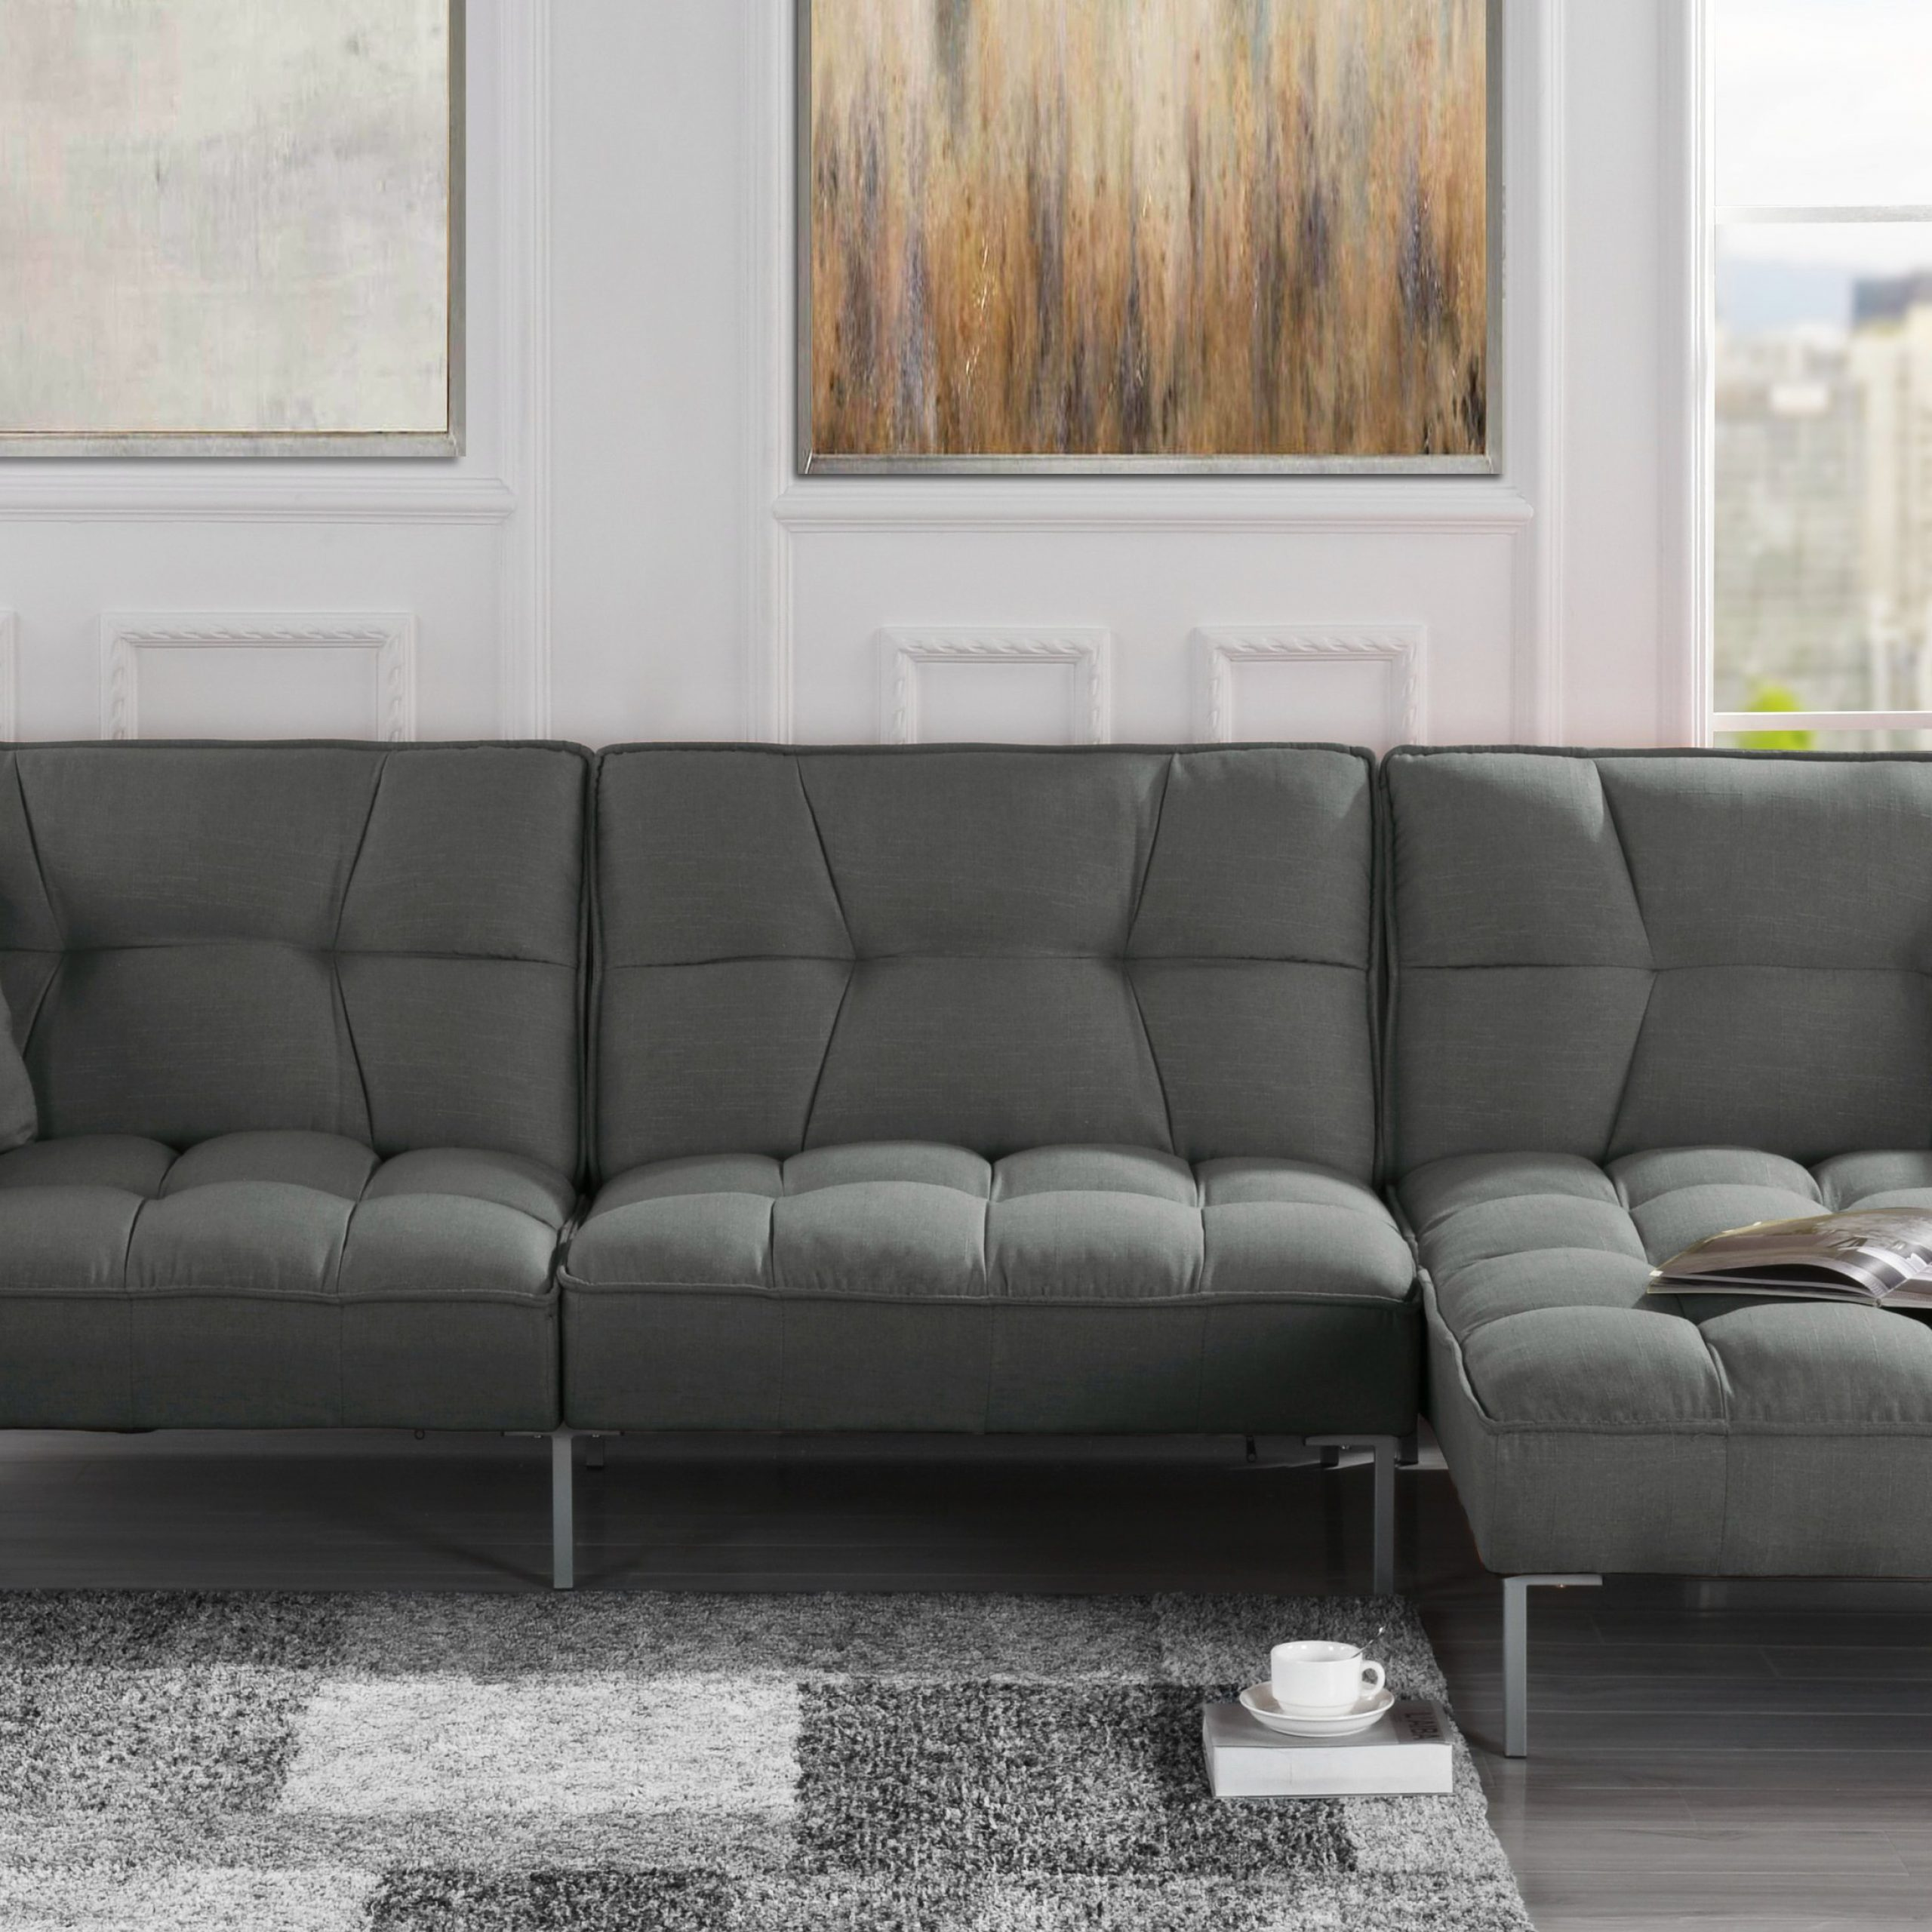 Mobilis Modern Square Tufted Linen Fabric Sectional Sofa For Polyfiber Linen Fabric Sectional Sofas Dark Gray (View 2 of 15)